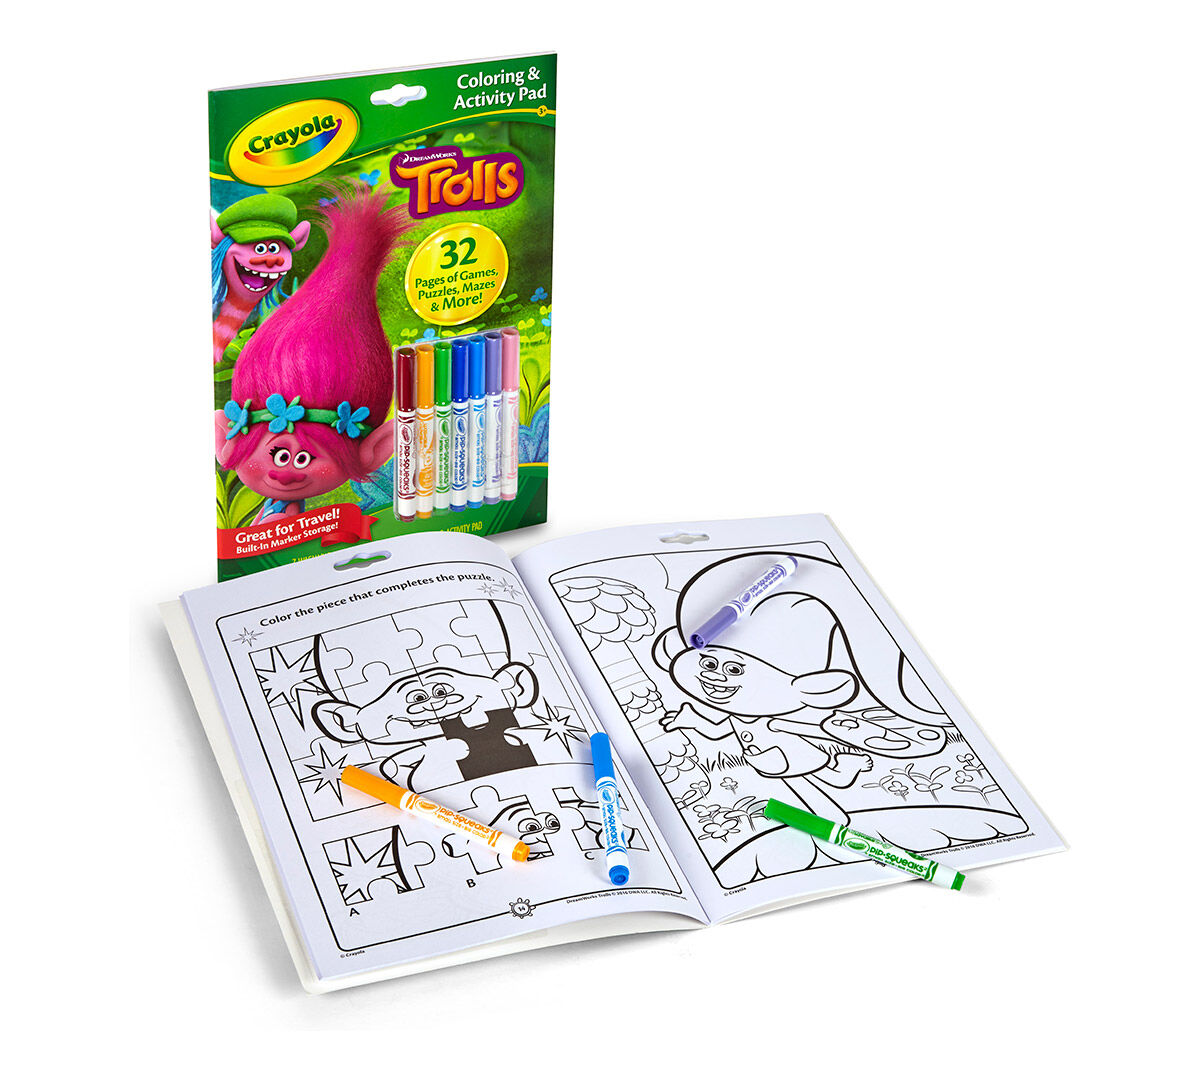 - Coloring & Activity Book, Trolls Crayola